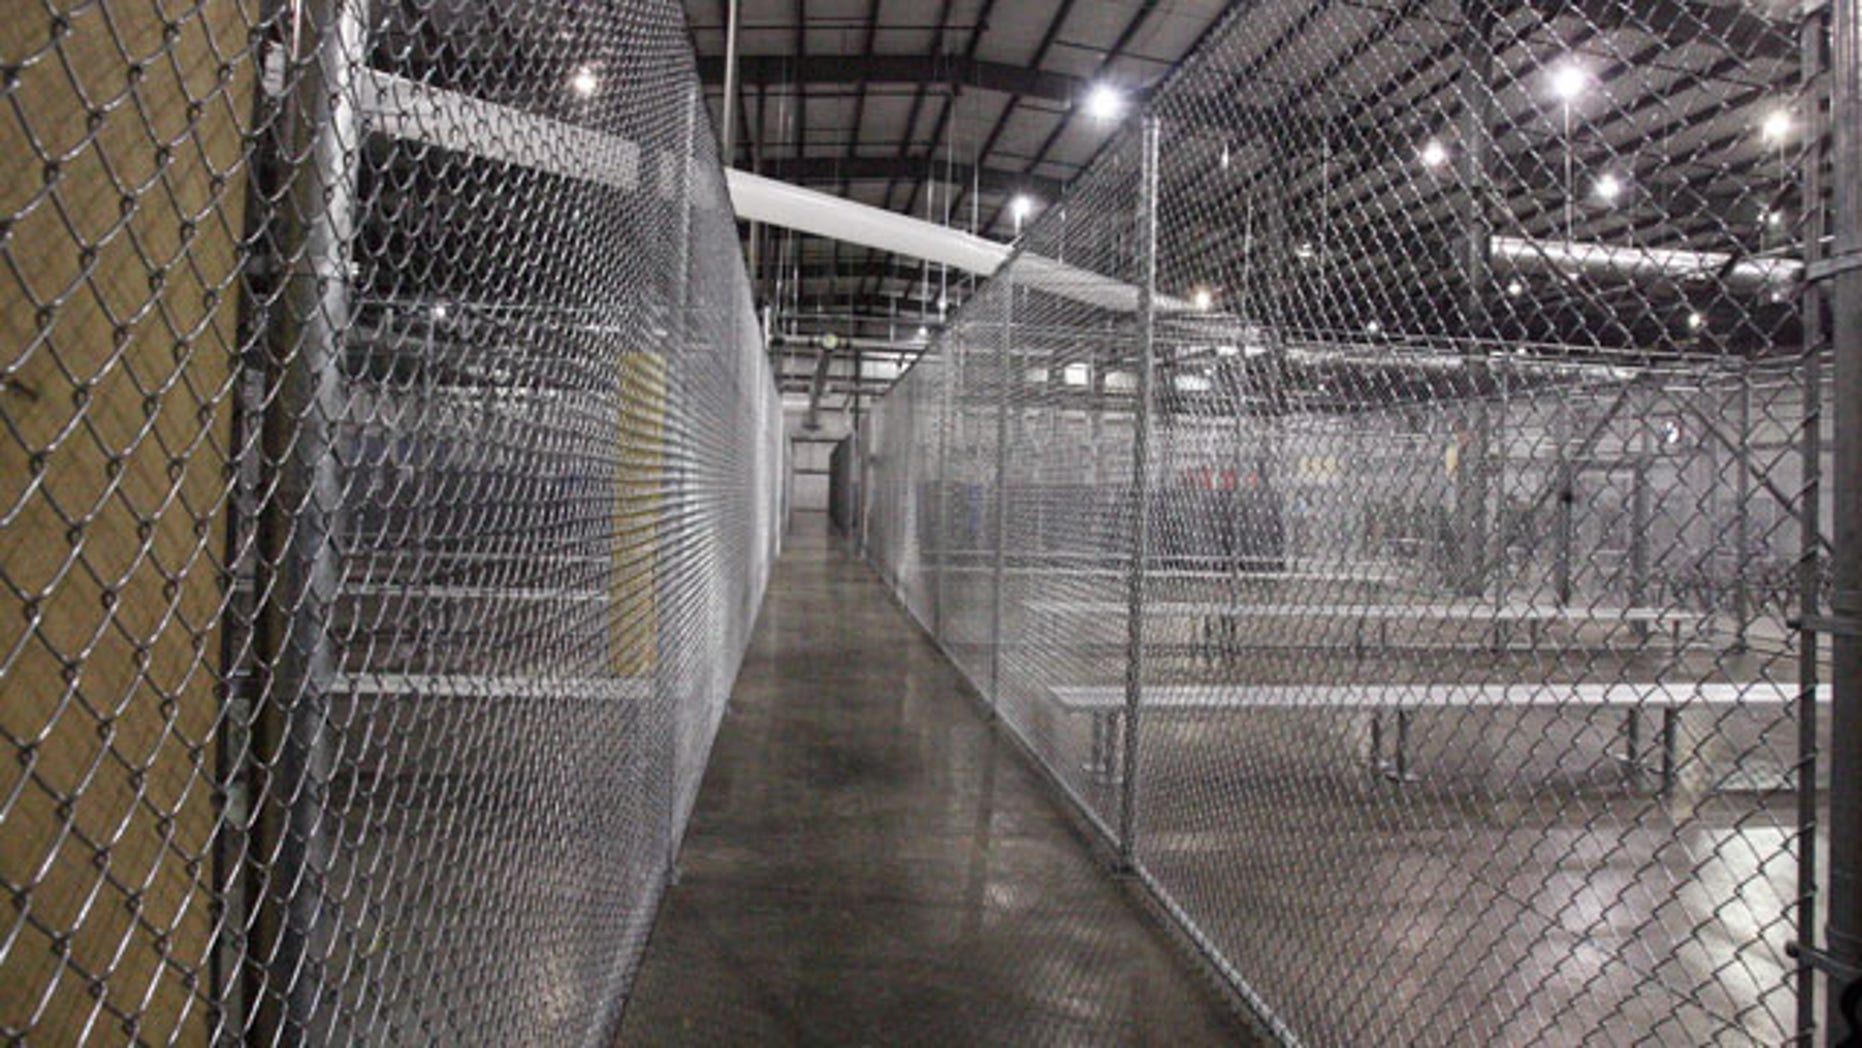 July 17, 2014: This photo shows a new intake facility built to help alleviate overcrowding at the U.S. Customs and Border Protection's McAllen Station in McAllen, Texas. (AP Photo/The McAllen Monitor, Joel Martinez)